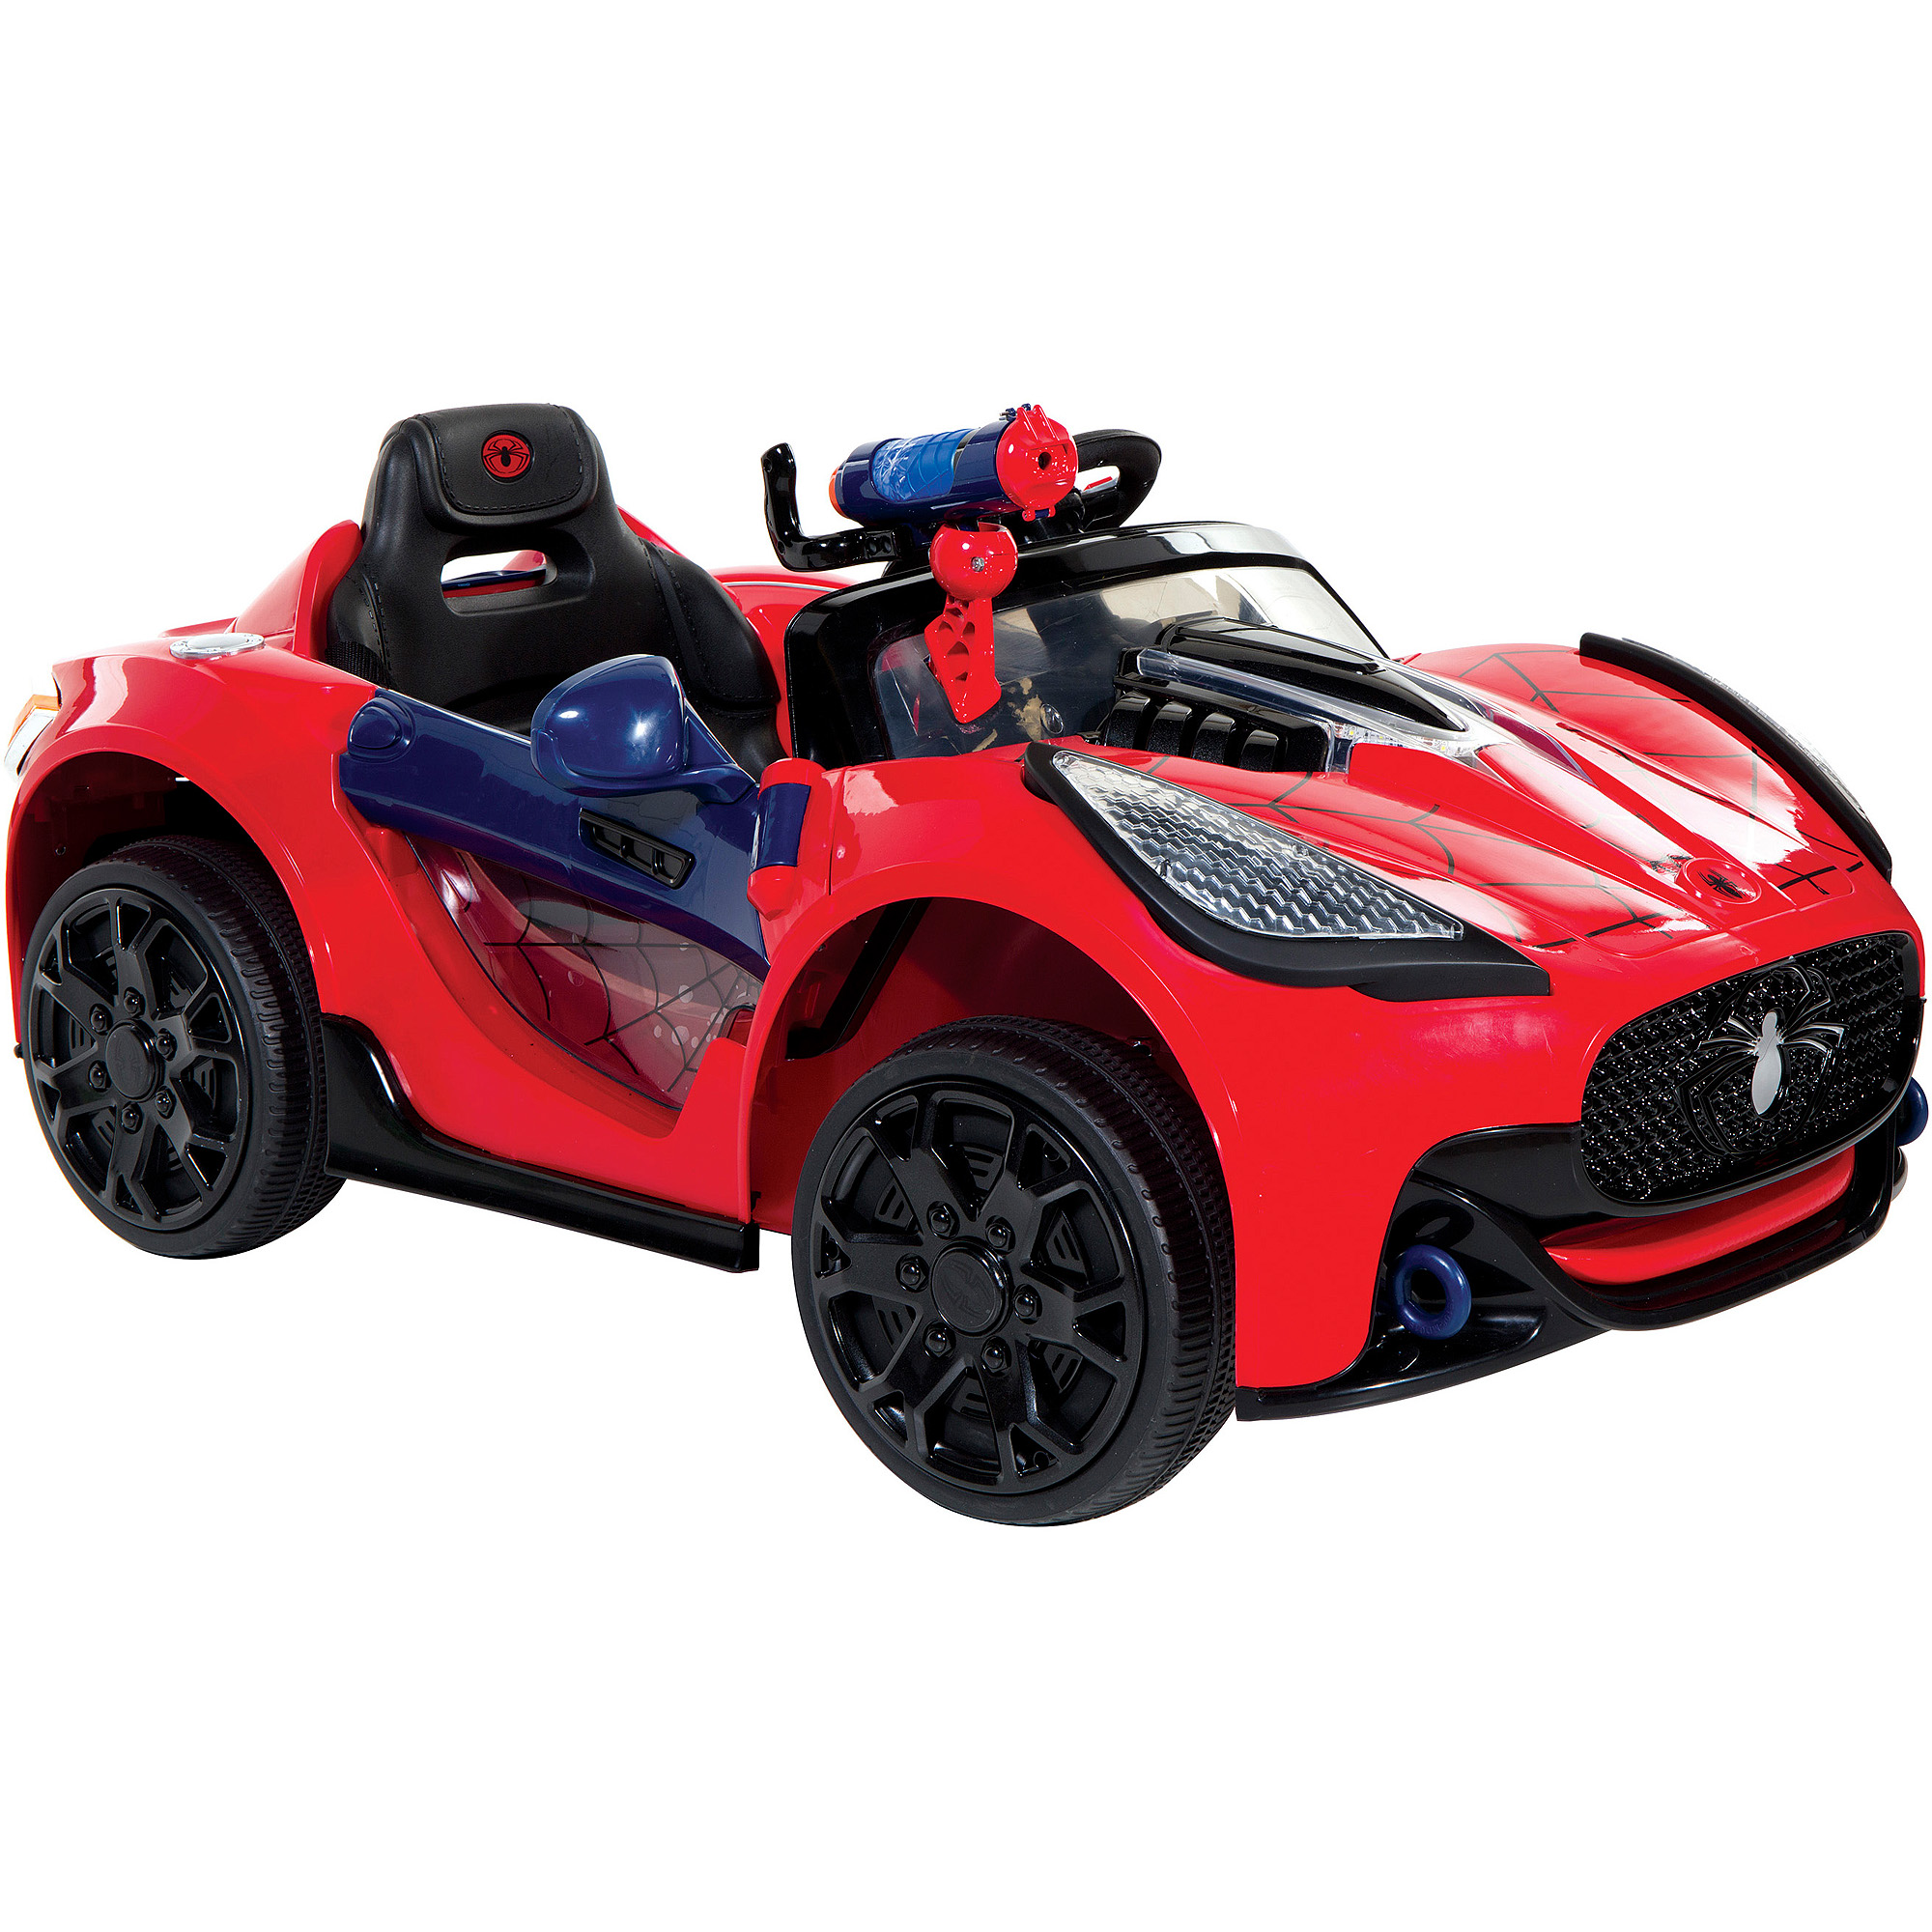 e63173c1 9521 406f b59f 10f66cd28949_1.52316e5dcd63f0c825aa3f27d5d22f1a spider man super car 6 volt battery powered ride on walmart com  at webbmarketing.co